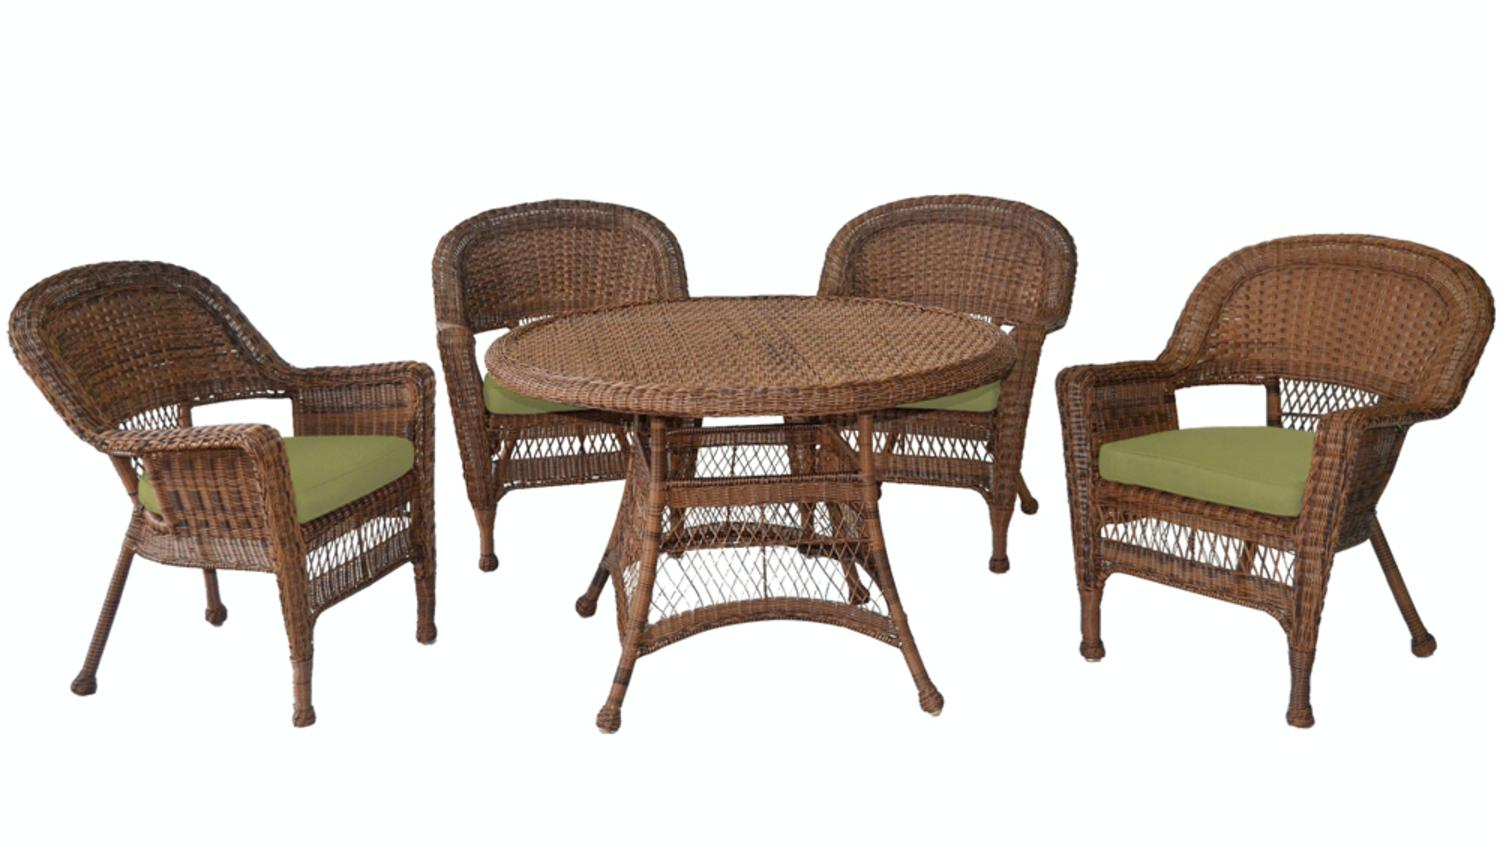 5-Piece Honey Resin Wicker Chair & Table Patio Dining Furniture Set Green Cushions by CC Outdoor Living